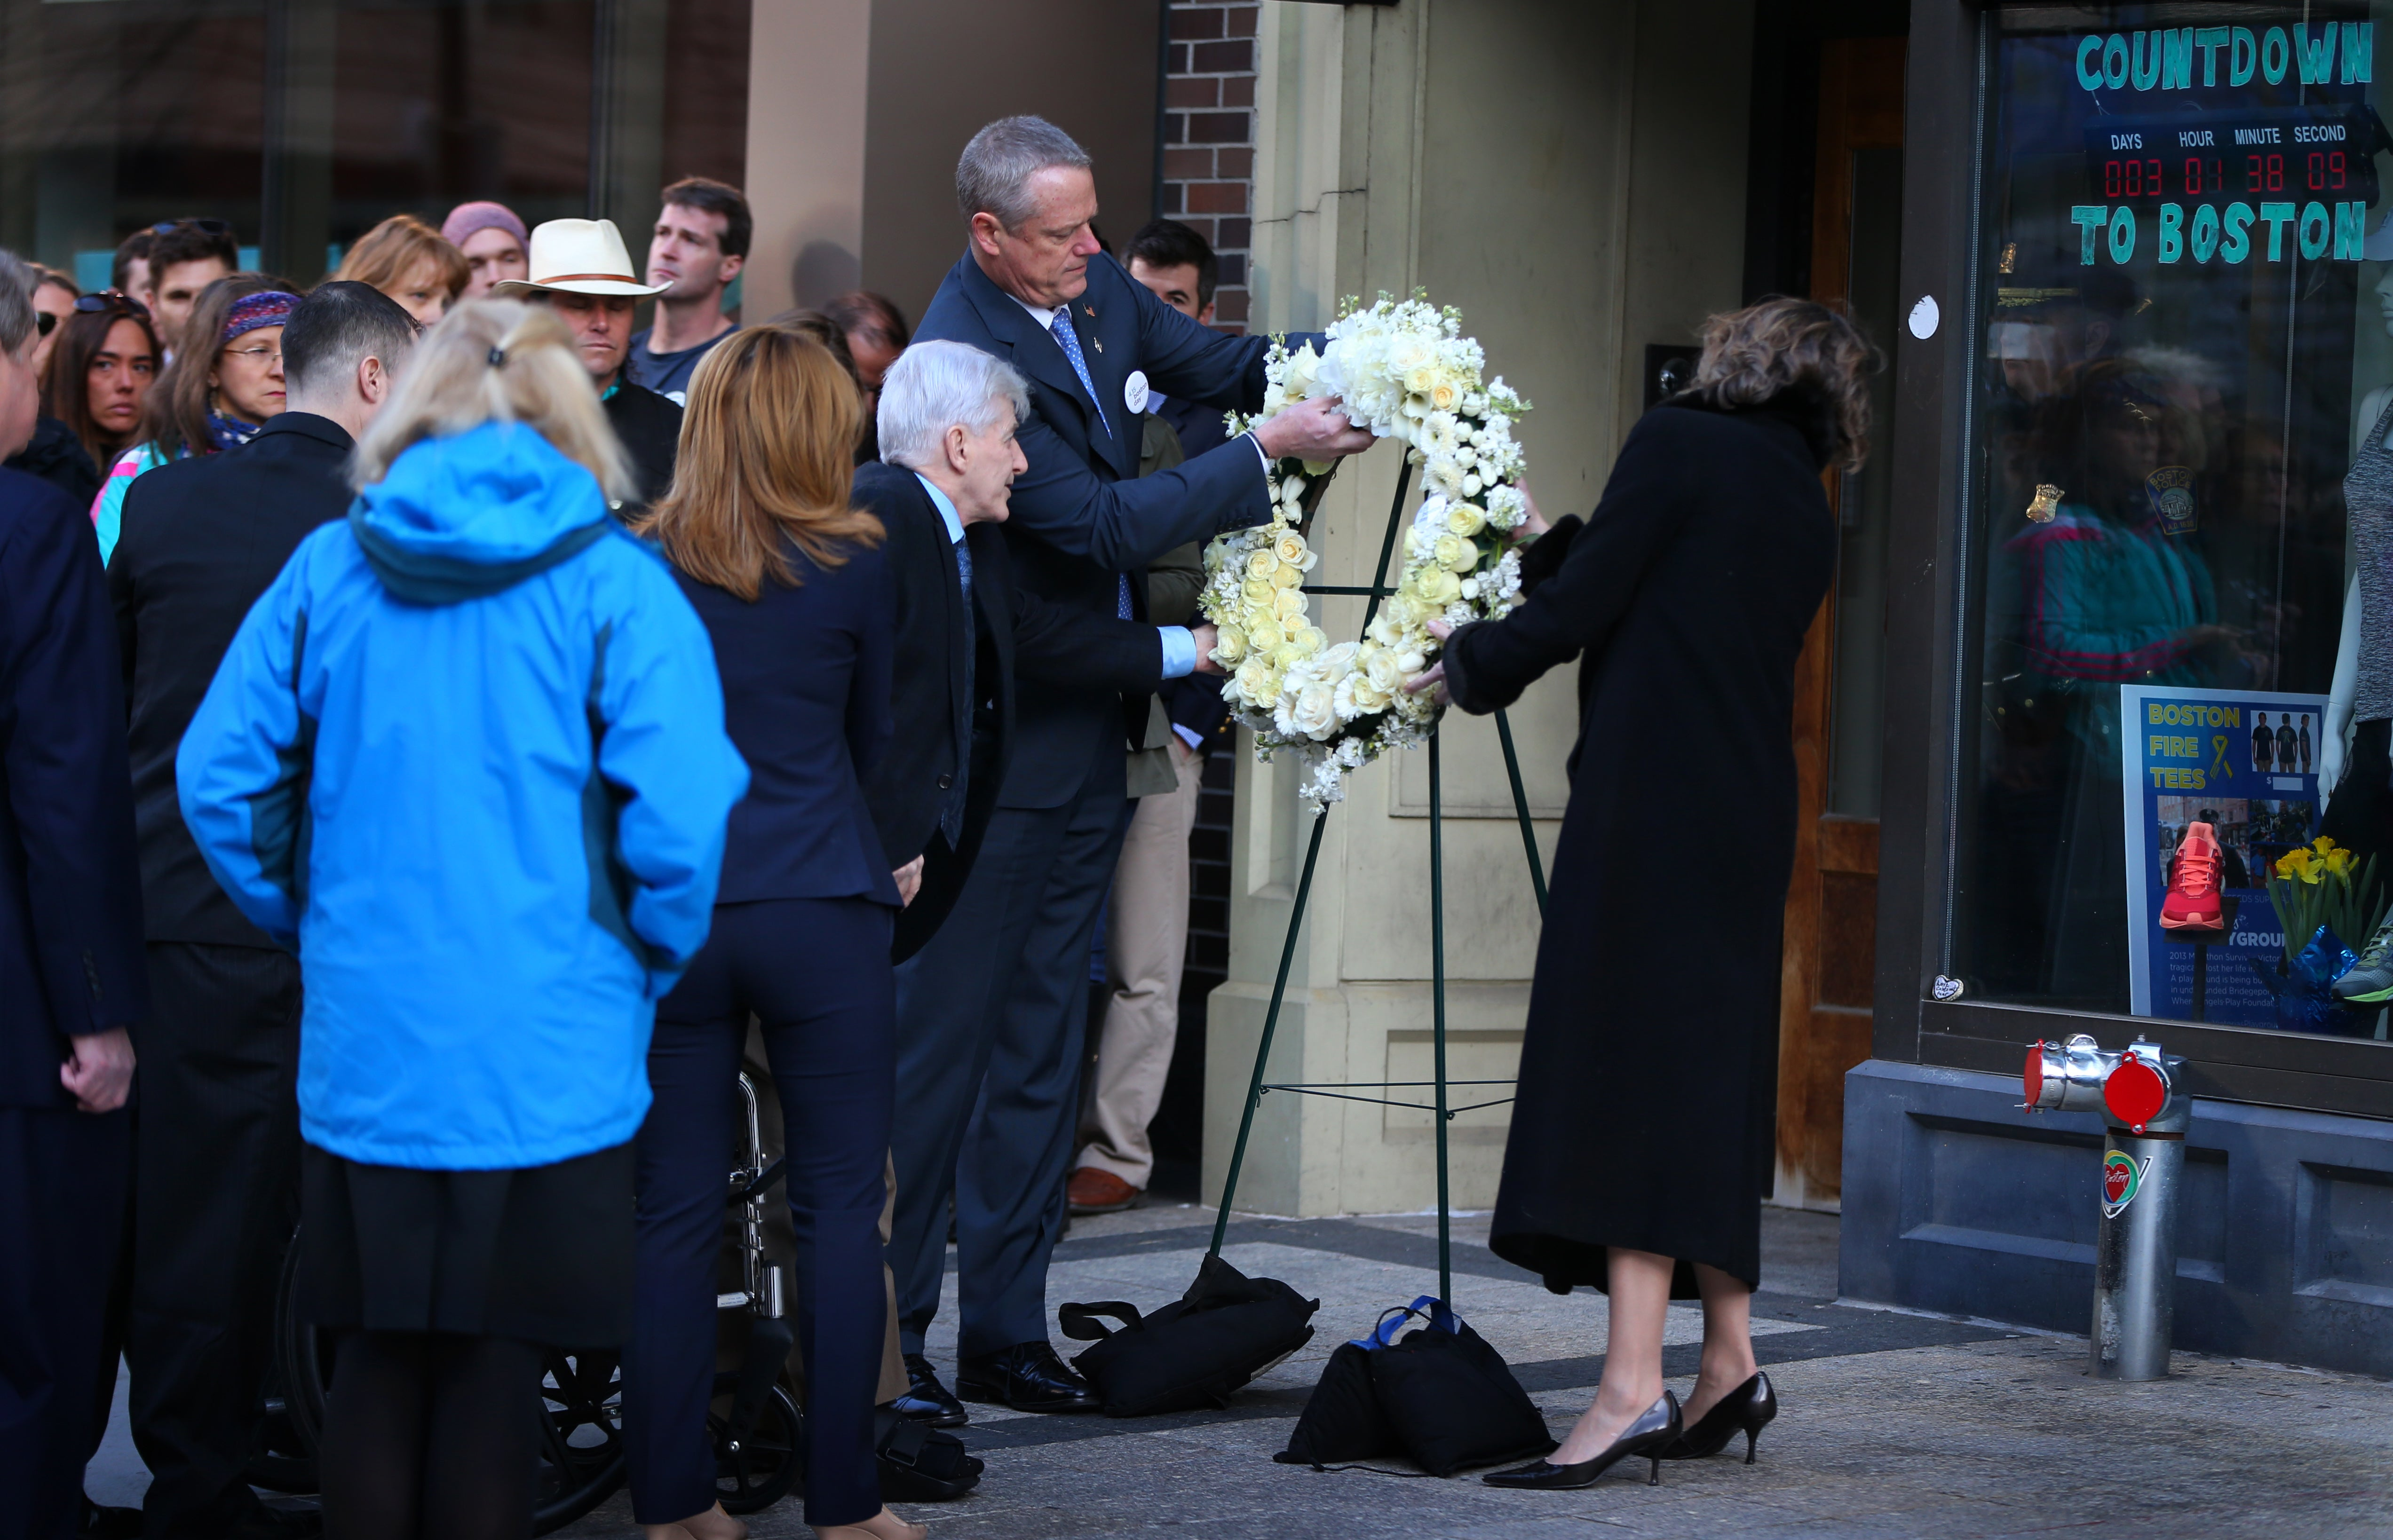 04152016 Boston Ma Governor Charlie Baker and his wife during Wreath Laying ceremoney on Boylston Street with members of the Cambpell Family to honor Marathon Bombing victims. .Boston Globe/Staff Photographer Jonathan Wiggs